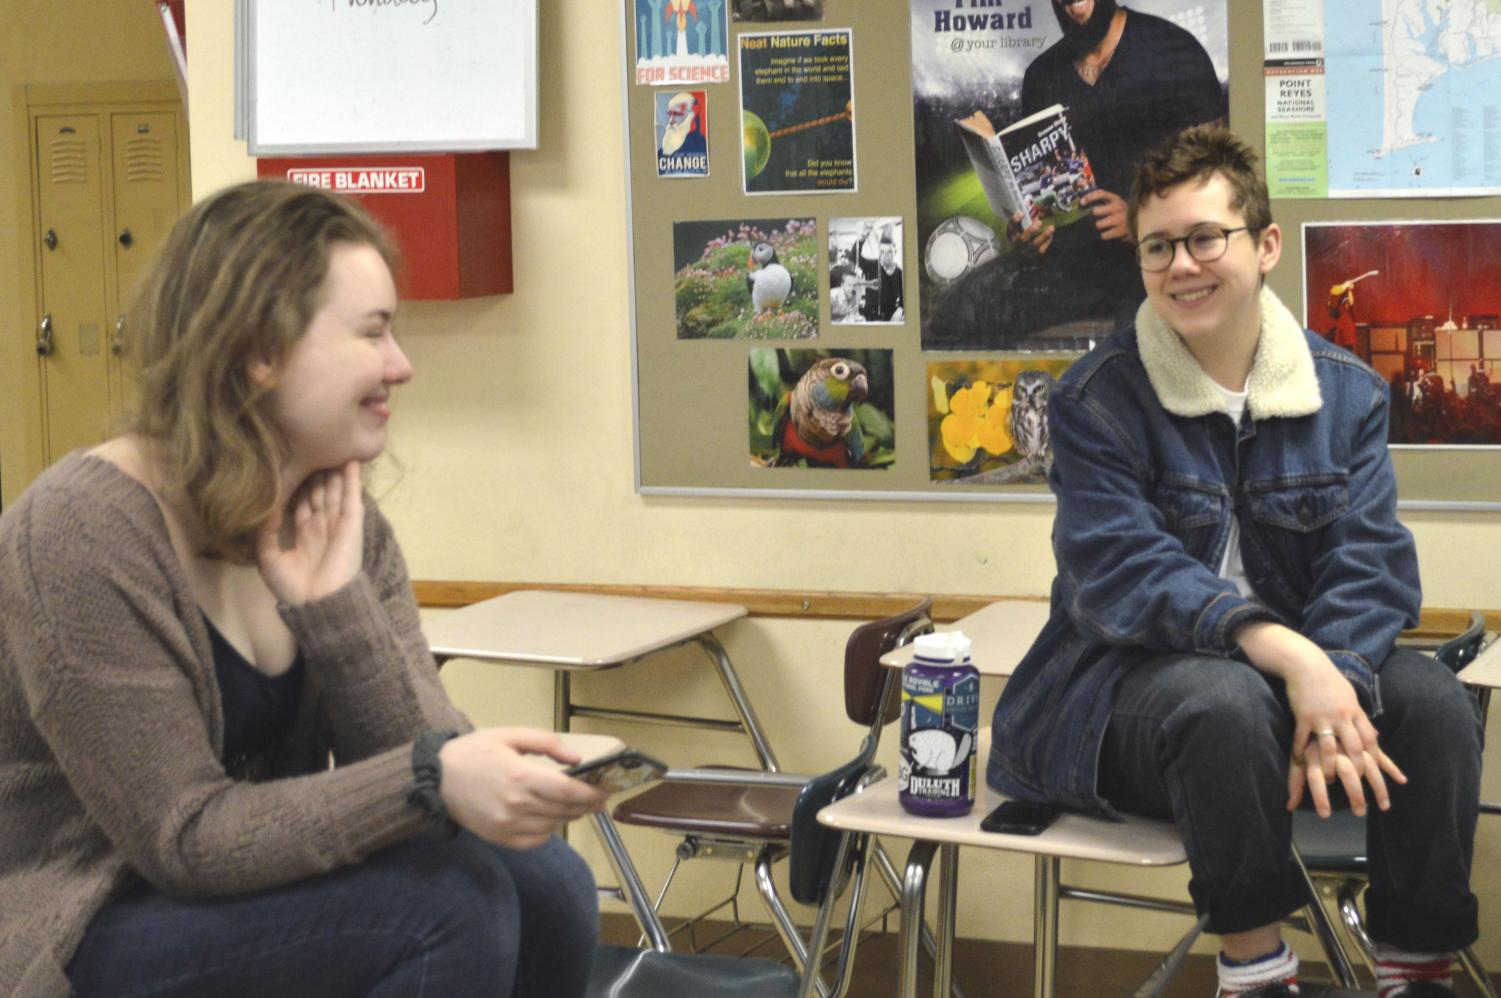 Senior Roots and Shoots leader Katie Christiansen and sophomore member Zoe Frank discuss the club's upcoming residential and business outreach plans during a meeting Feb. 5. According to Frank, Roots and Shoots meets on Tuesdays.